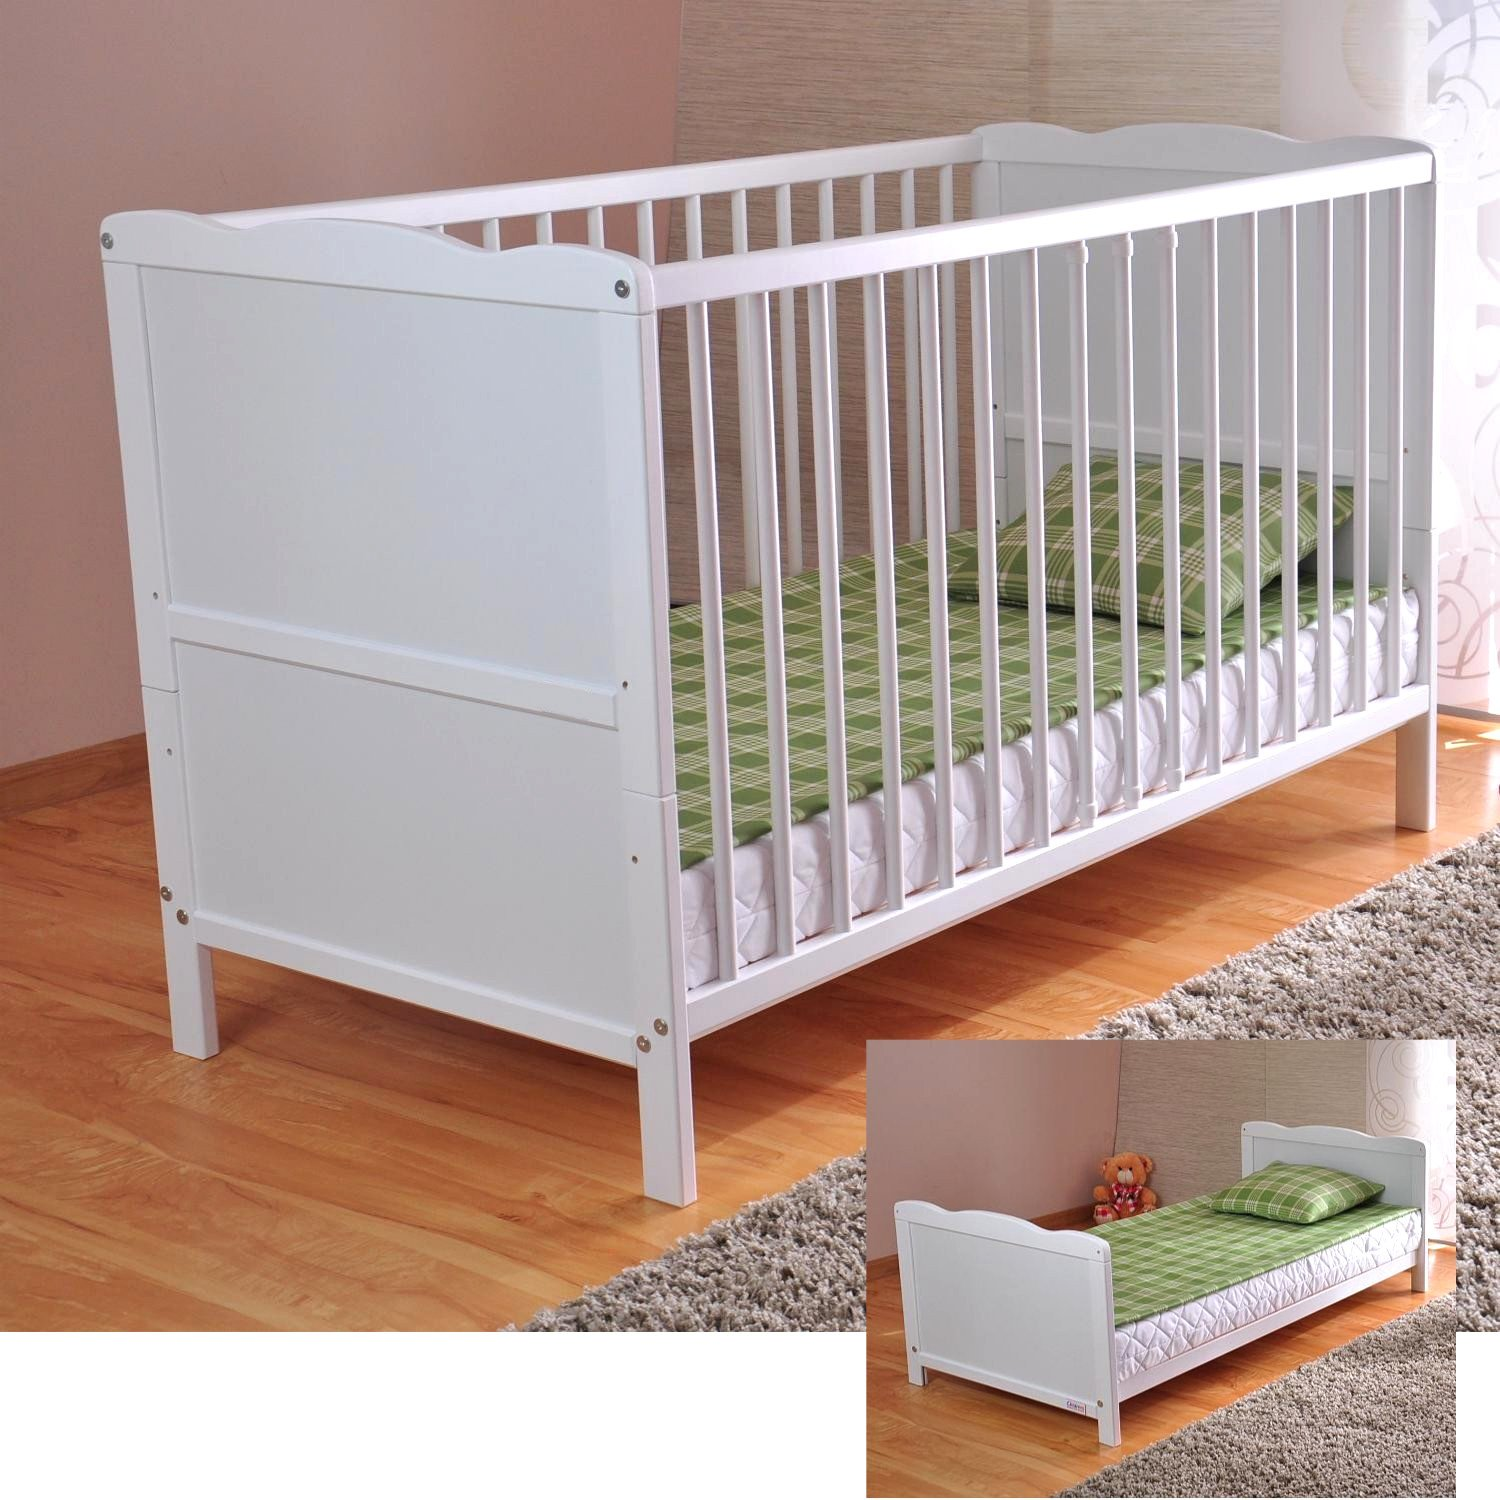 3 Position White Baby Cot Bed Amp Deluxe Foam Mattress